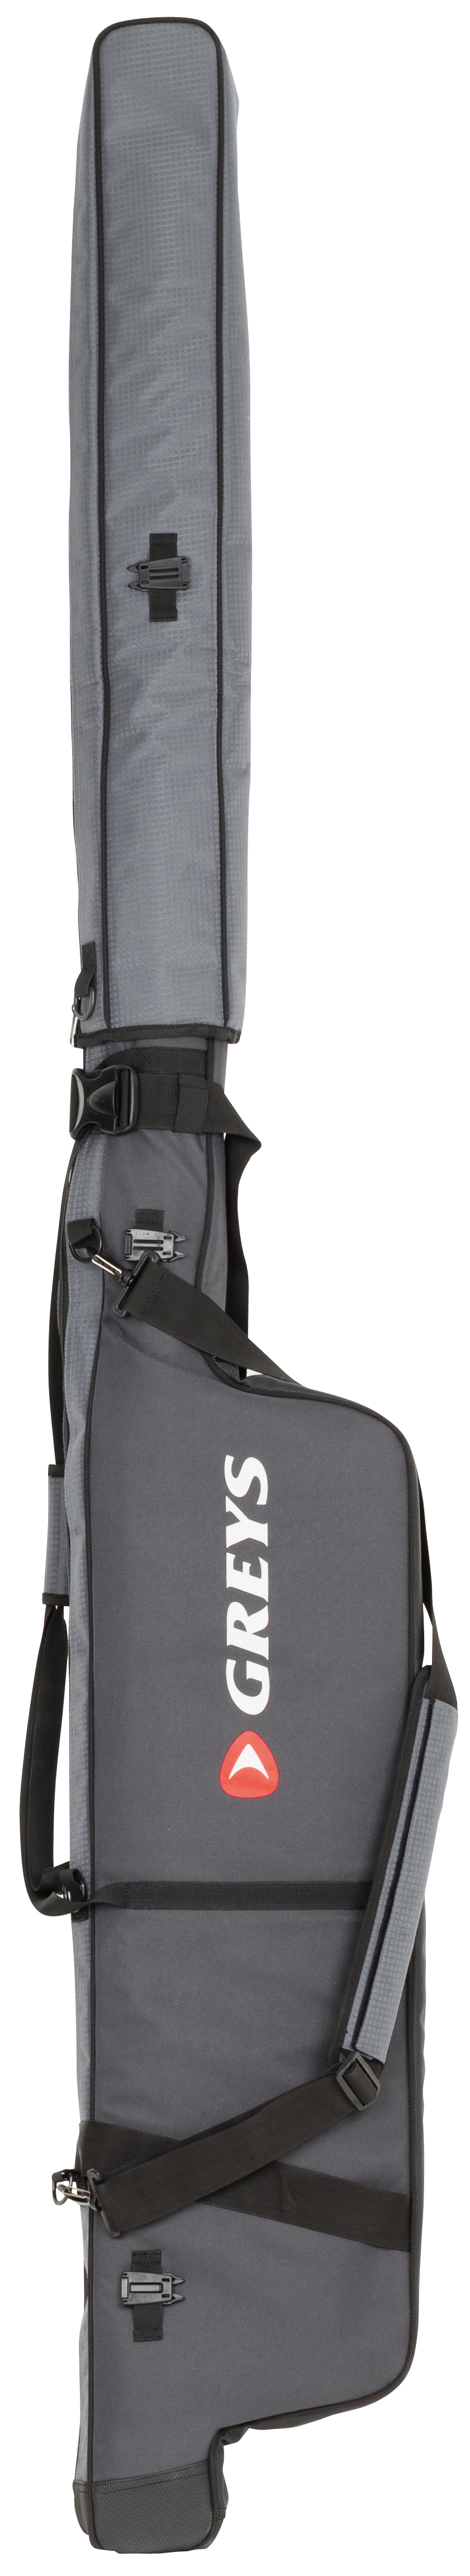 Details about Greys Ready Holdall Sea Fishing Rod Bag